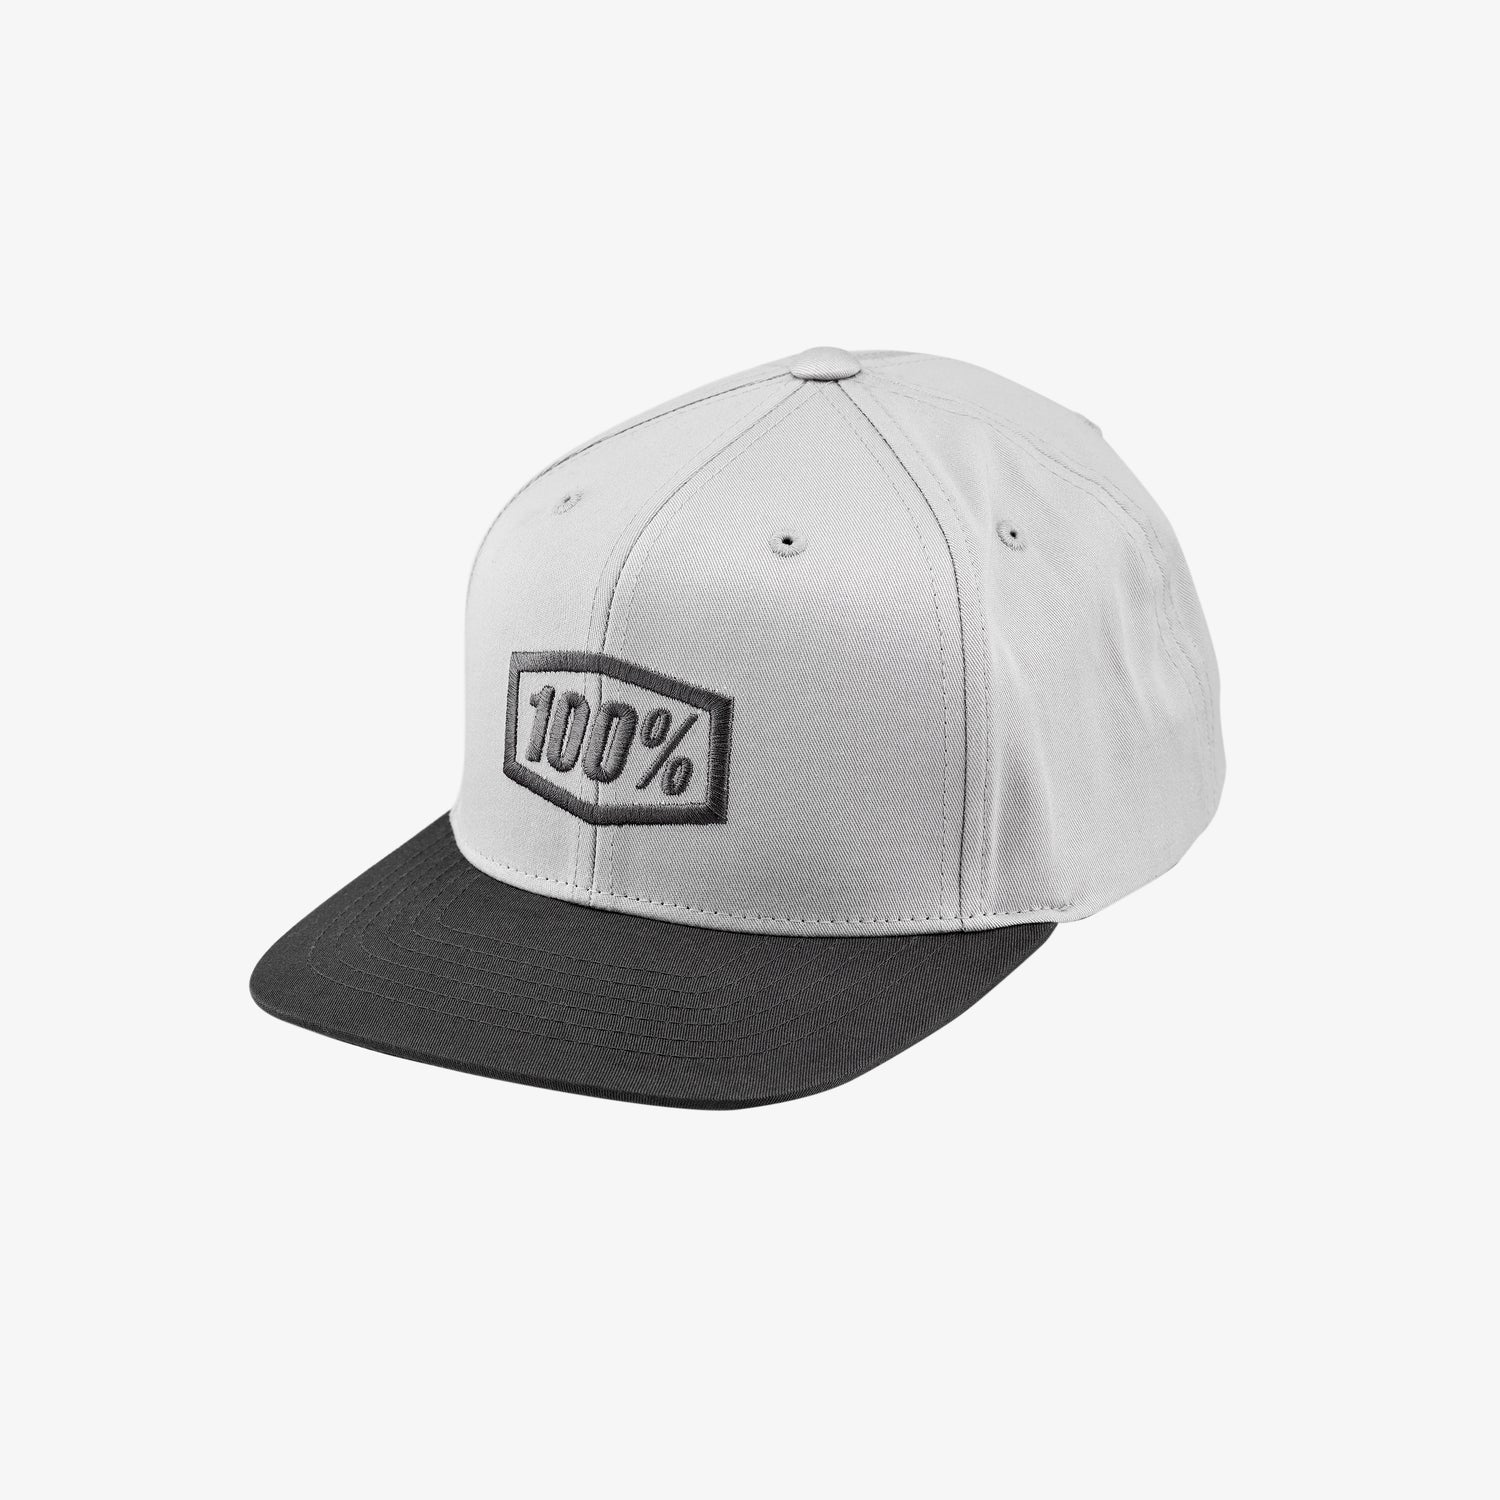 ESSENTIAL Youth Snapback Hat Charcoal